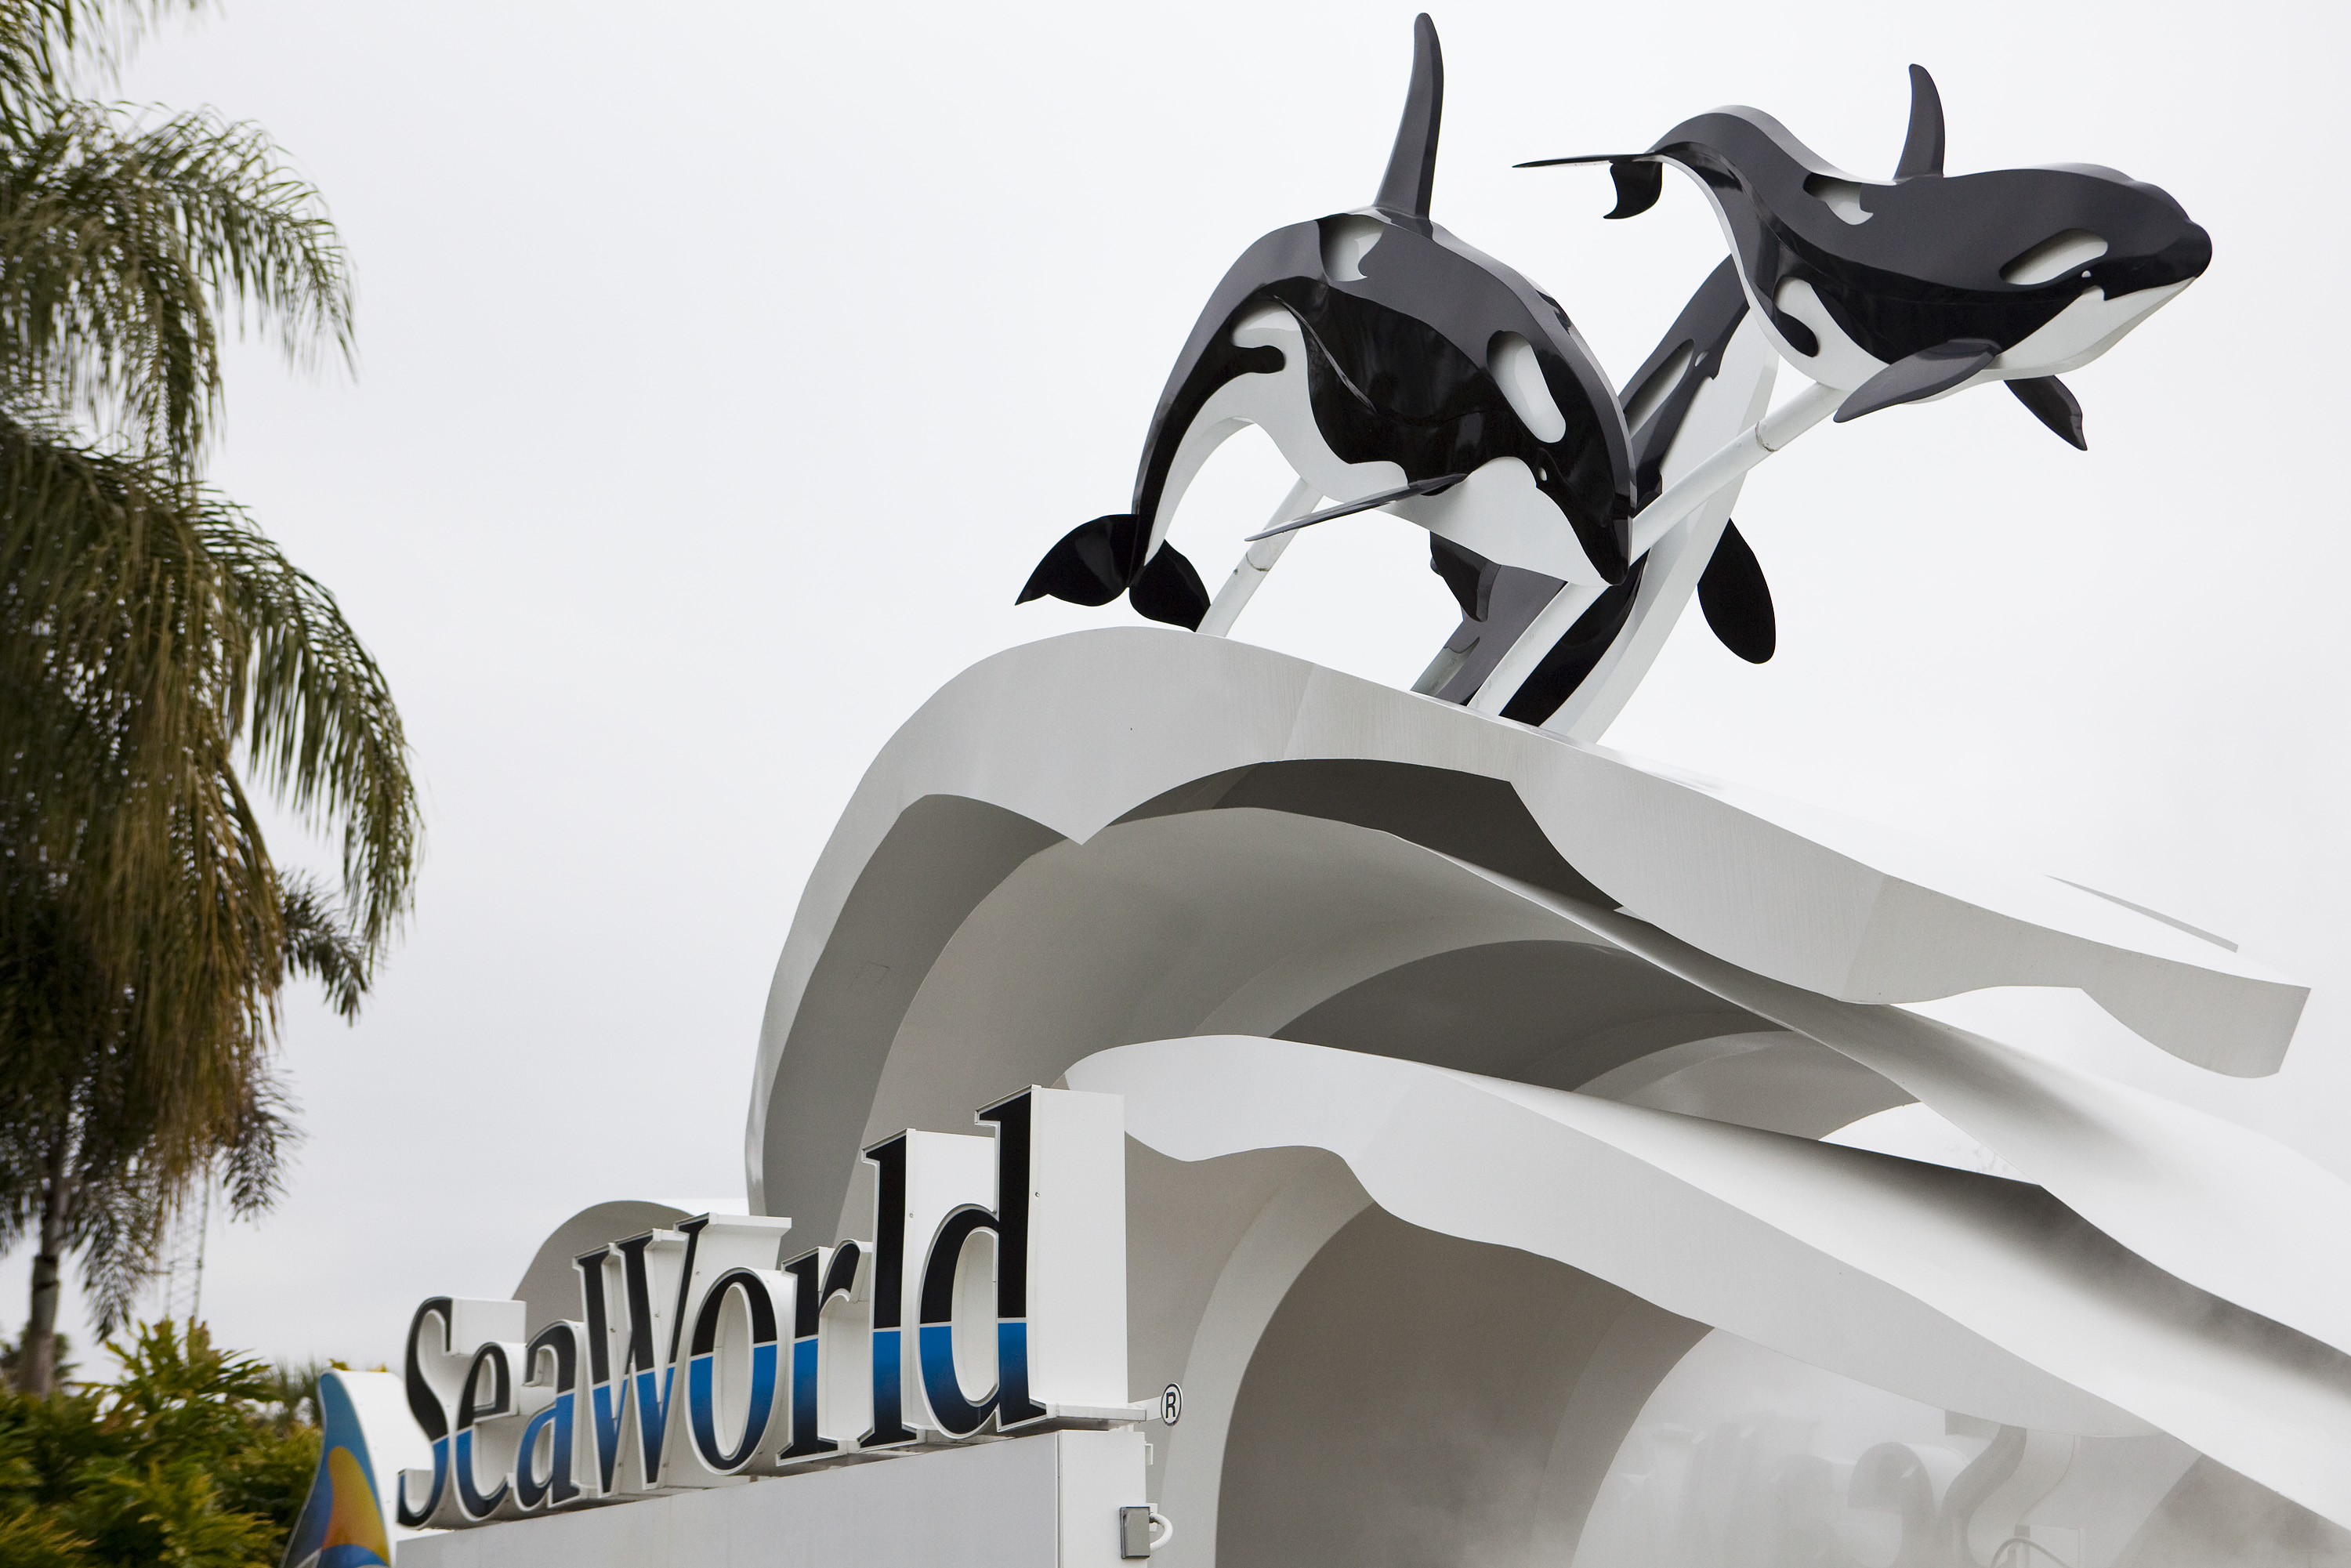 The sign at the entrance to SeaWorld Feb. 24, 2010 in Orlando, Florida.